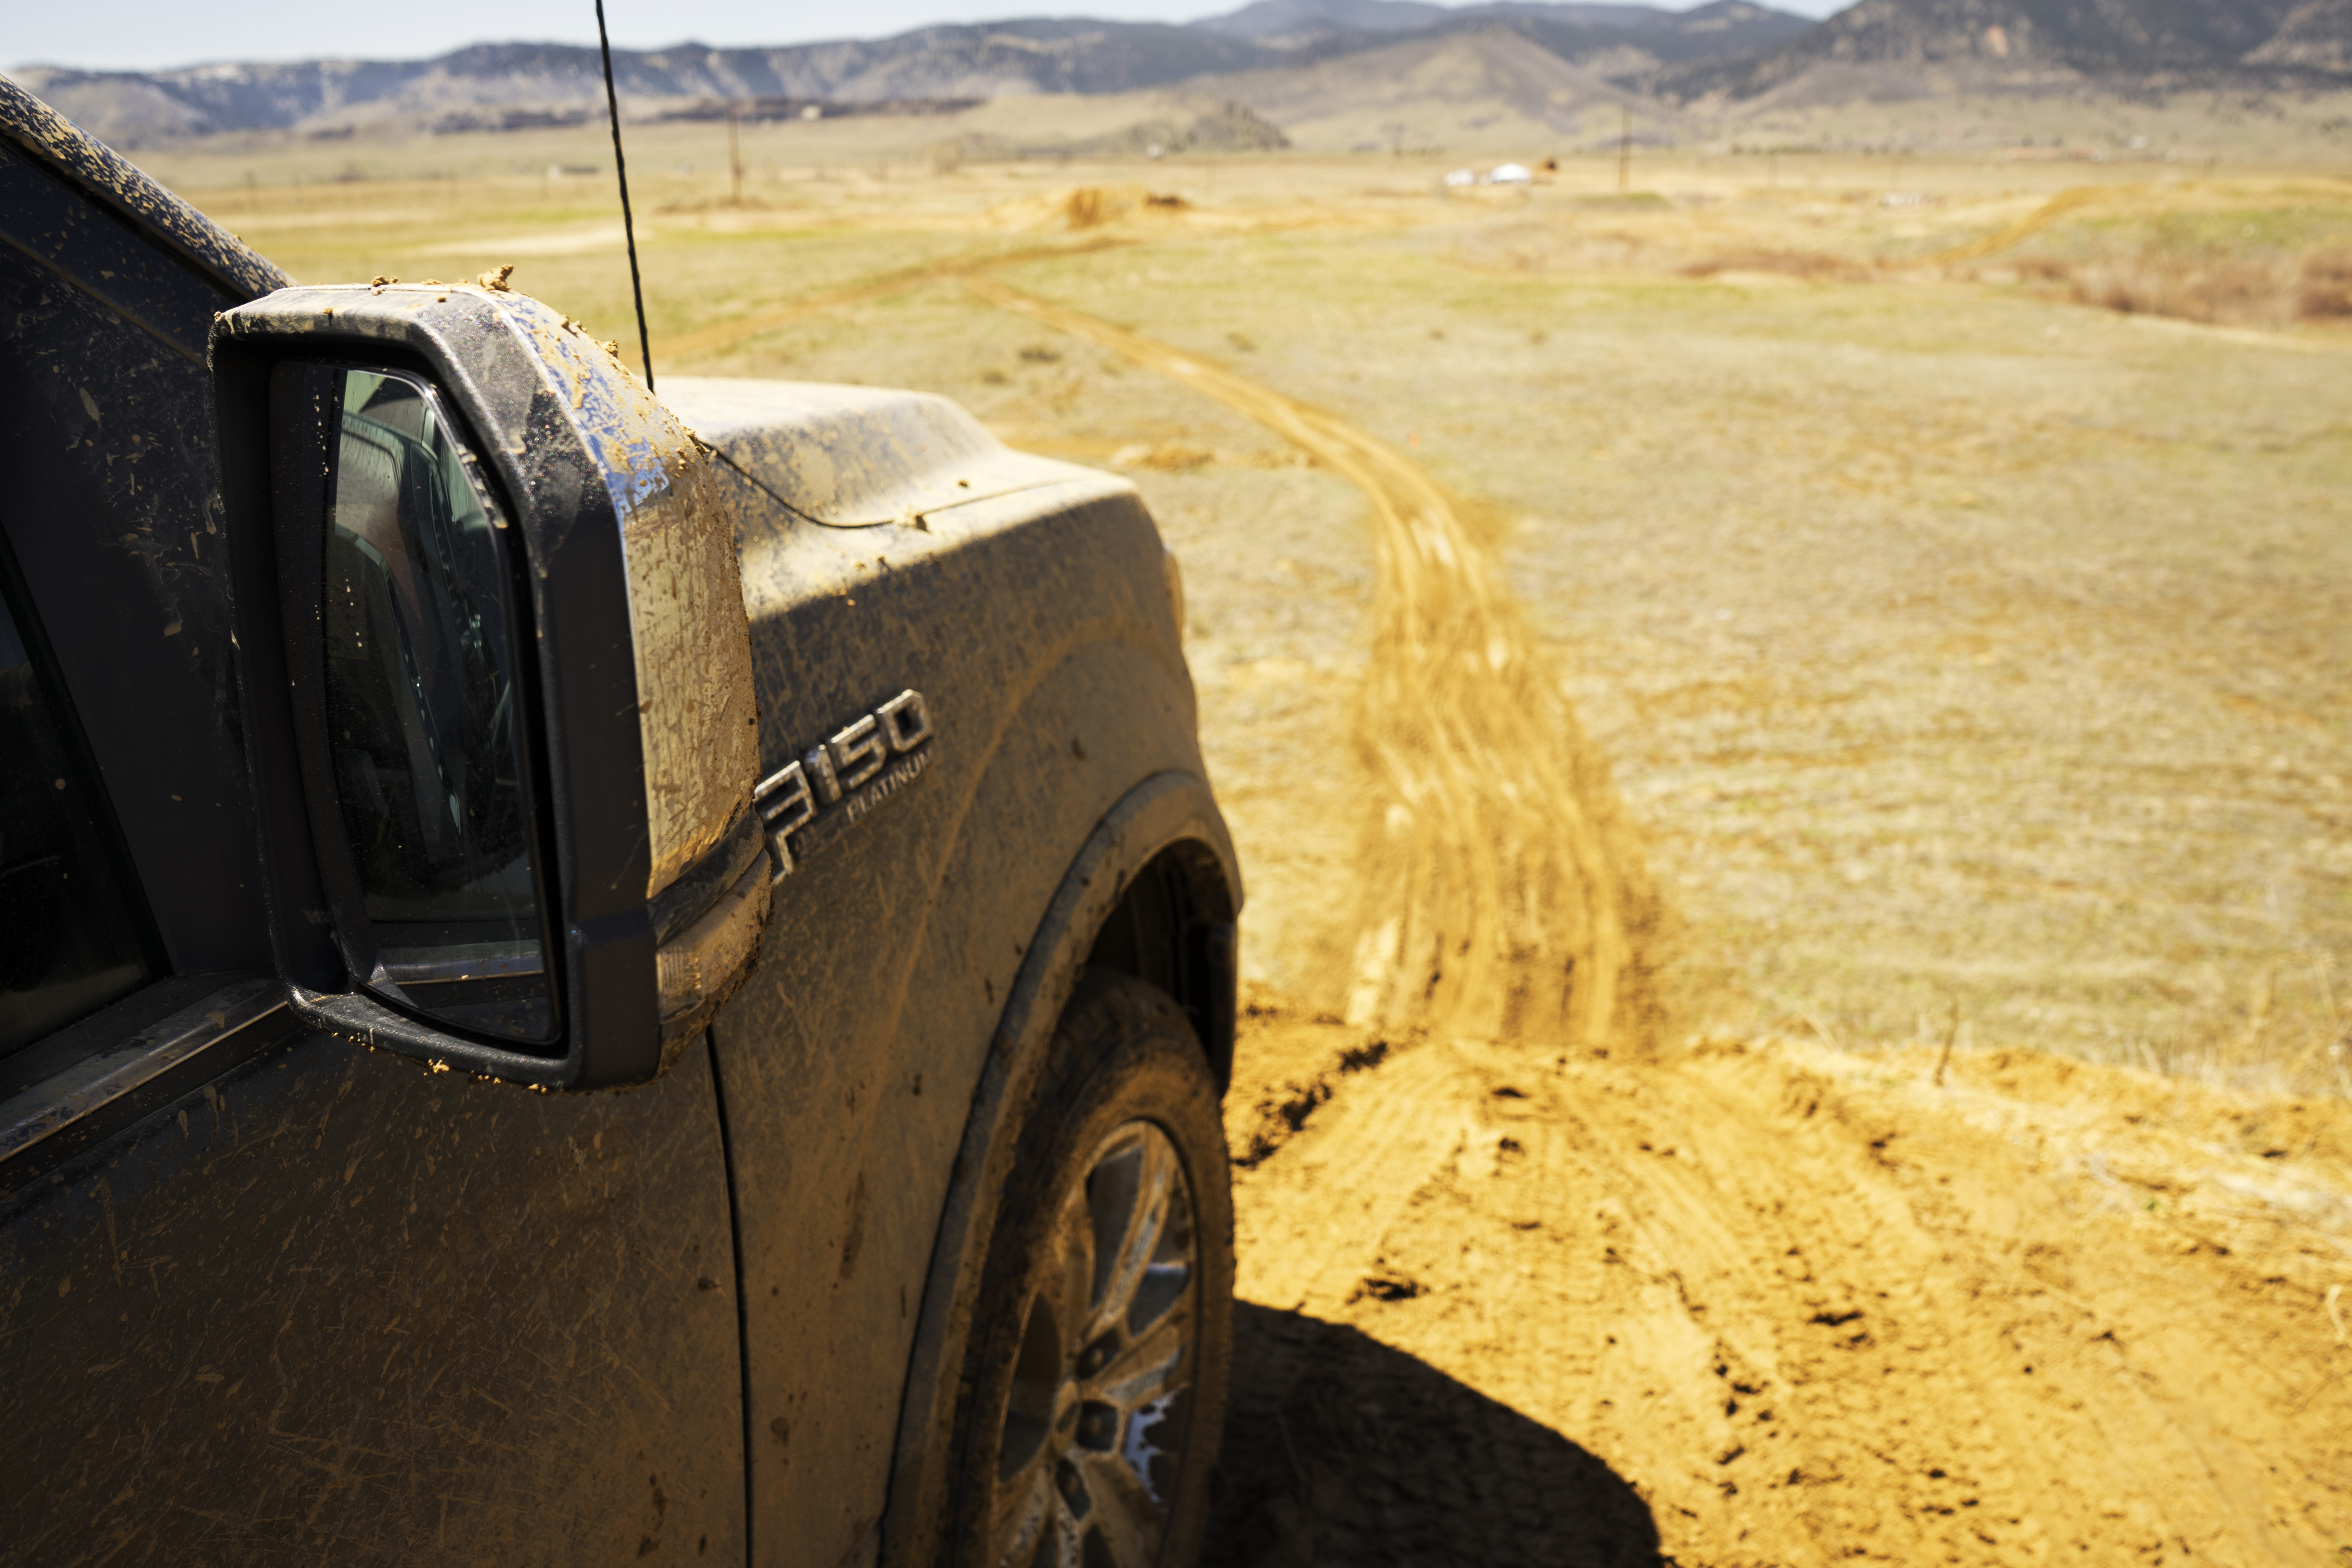 ford f-150 diesel off road